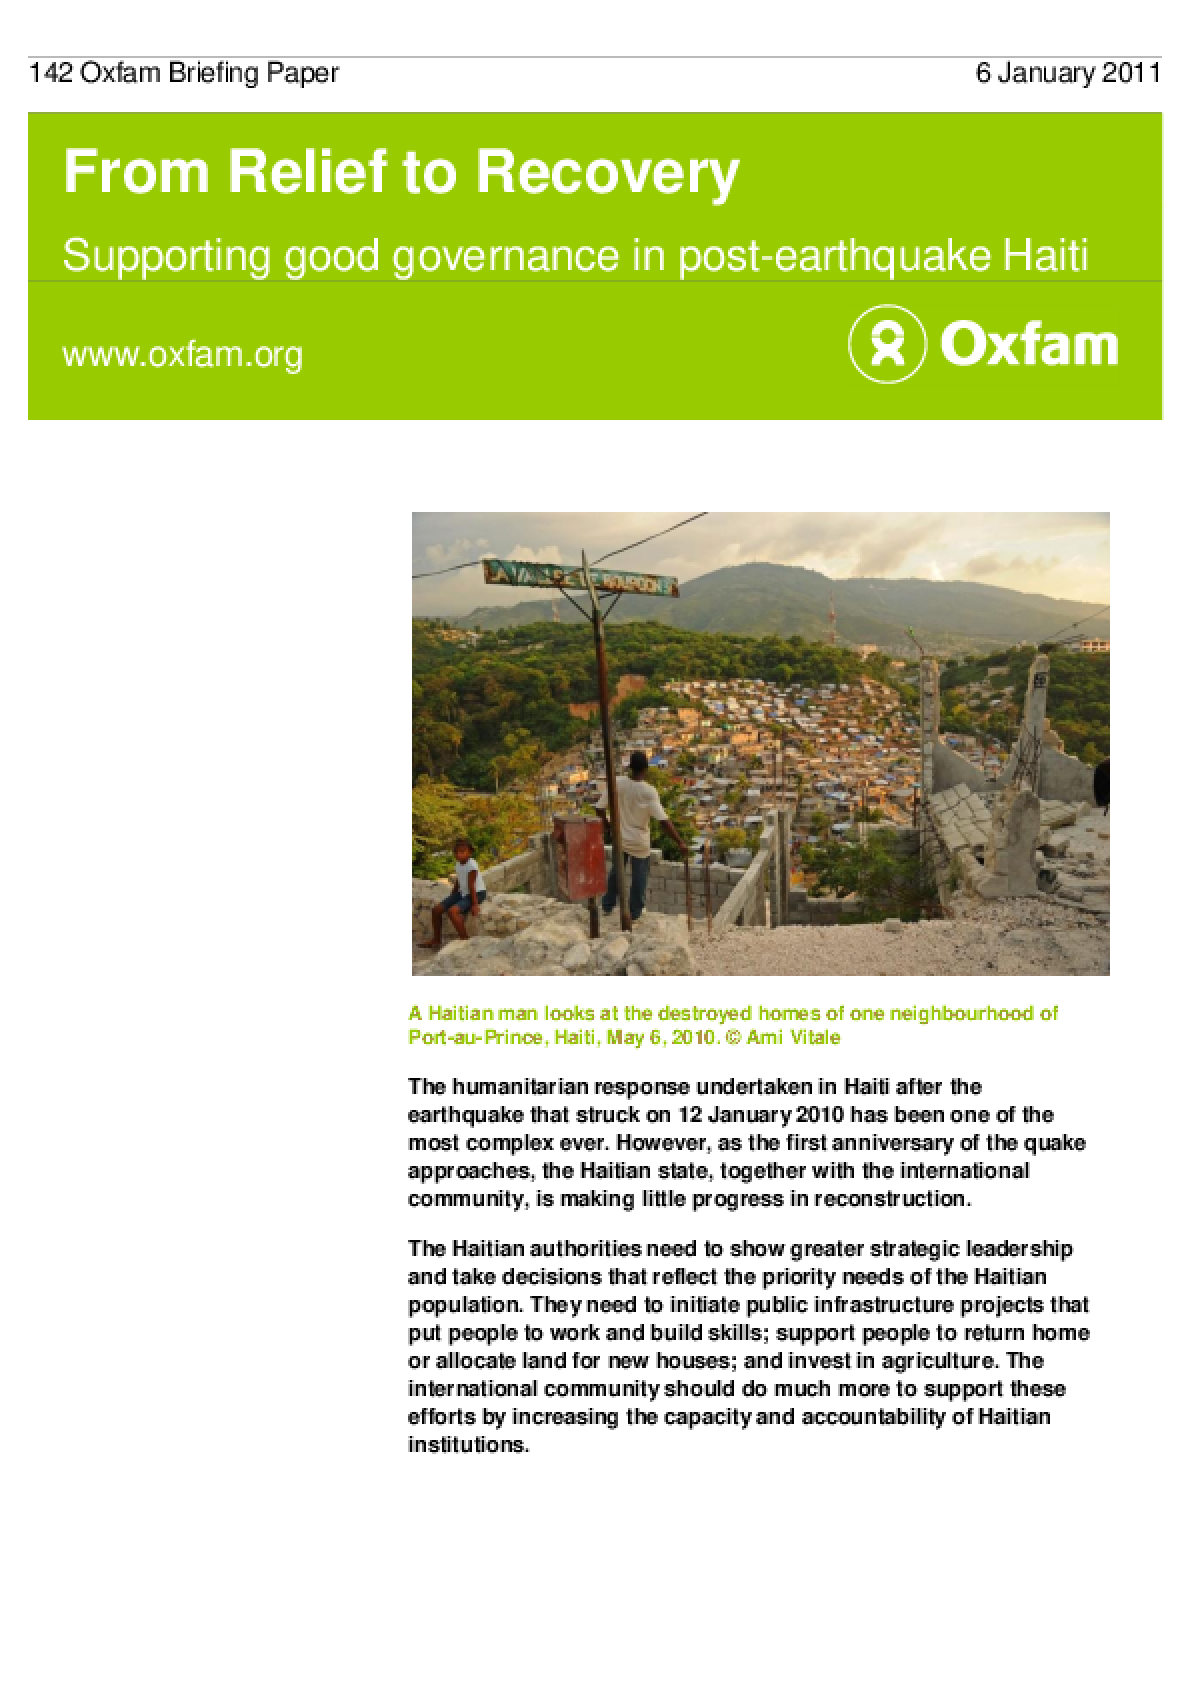 From Relief to Recovery: Supporting good governance in post-earthquake Haiti